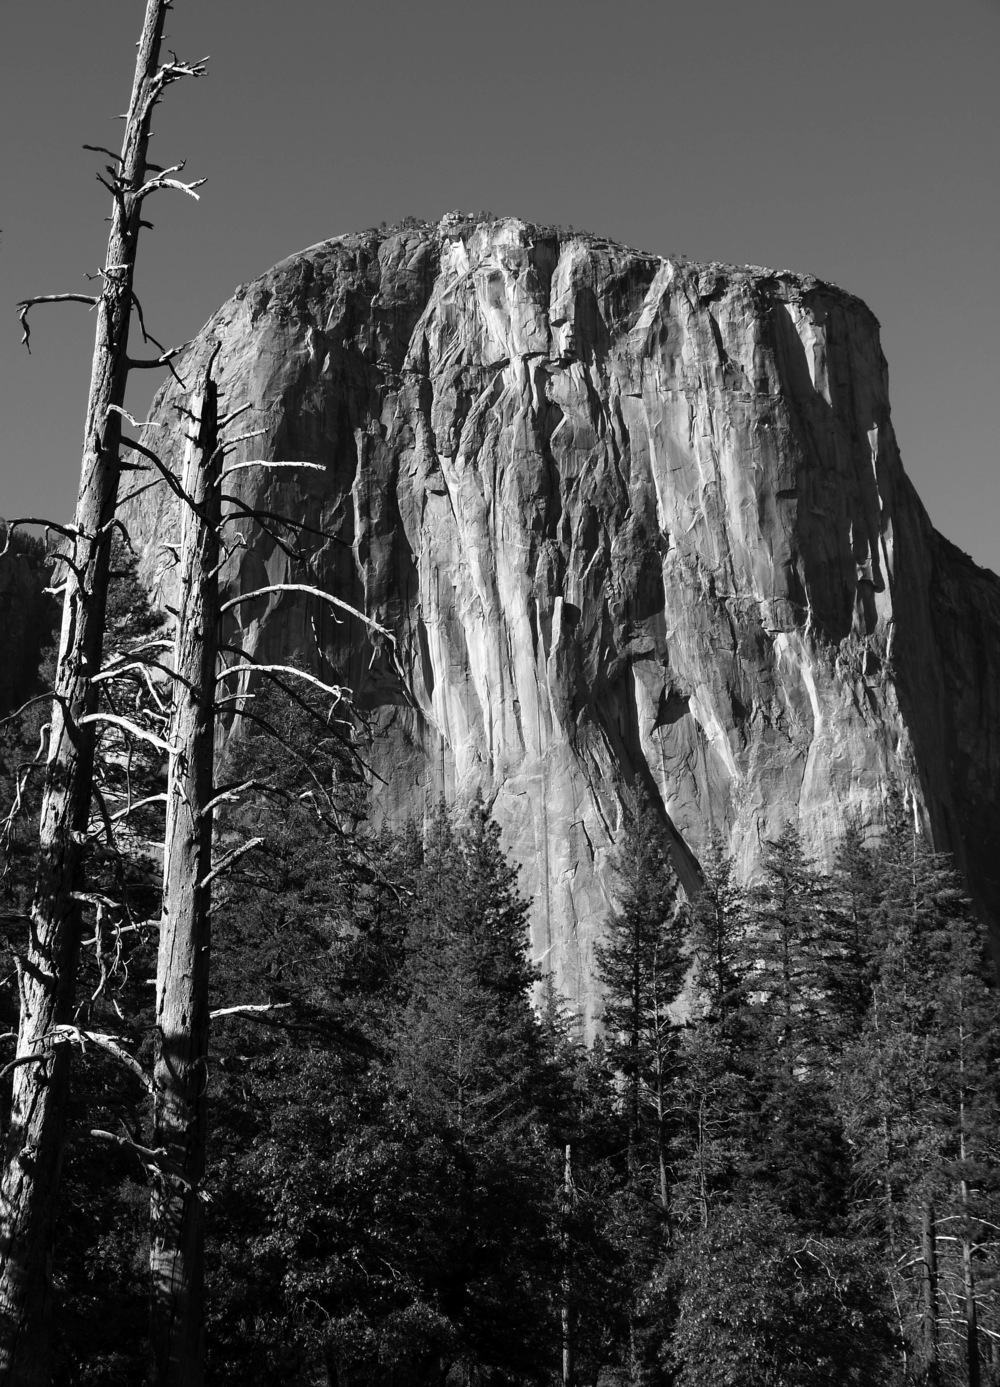 The largest exposed mass of granite on planet Earth, El Capitan rises 3,500 feet above the 4,000-foot floor of Yosemite Valley.